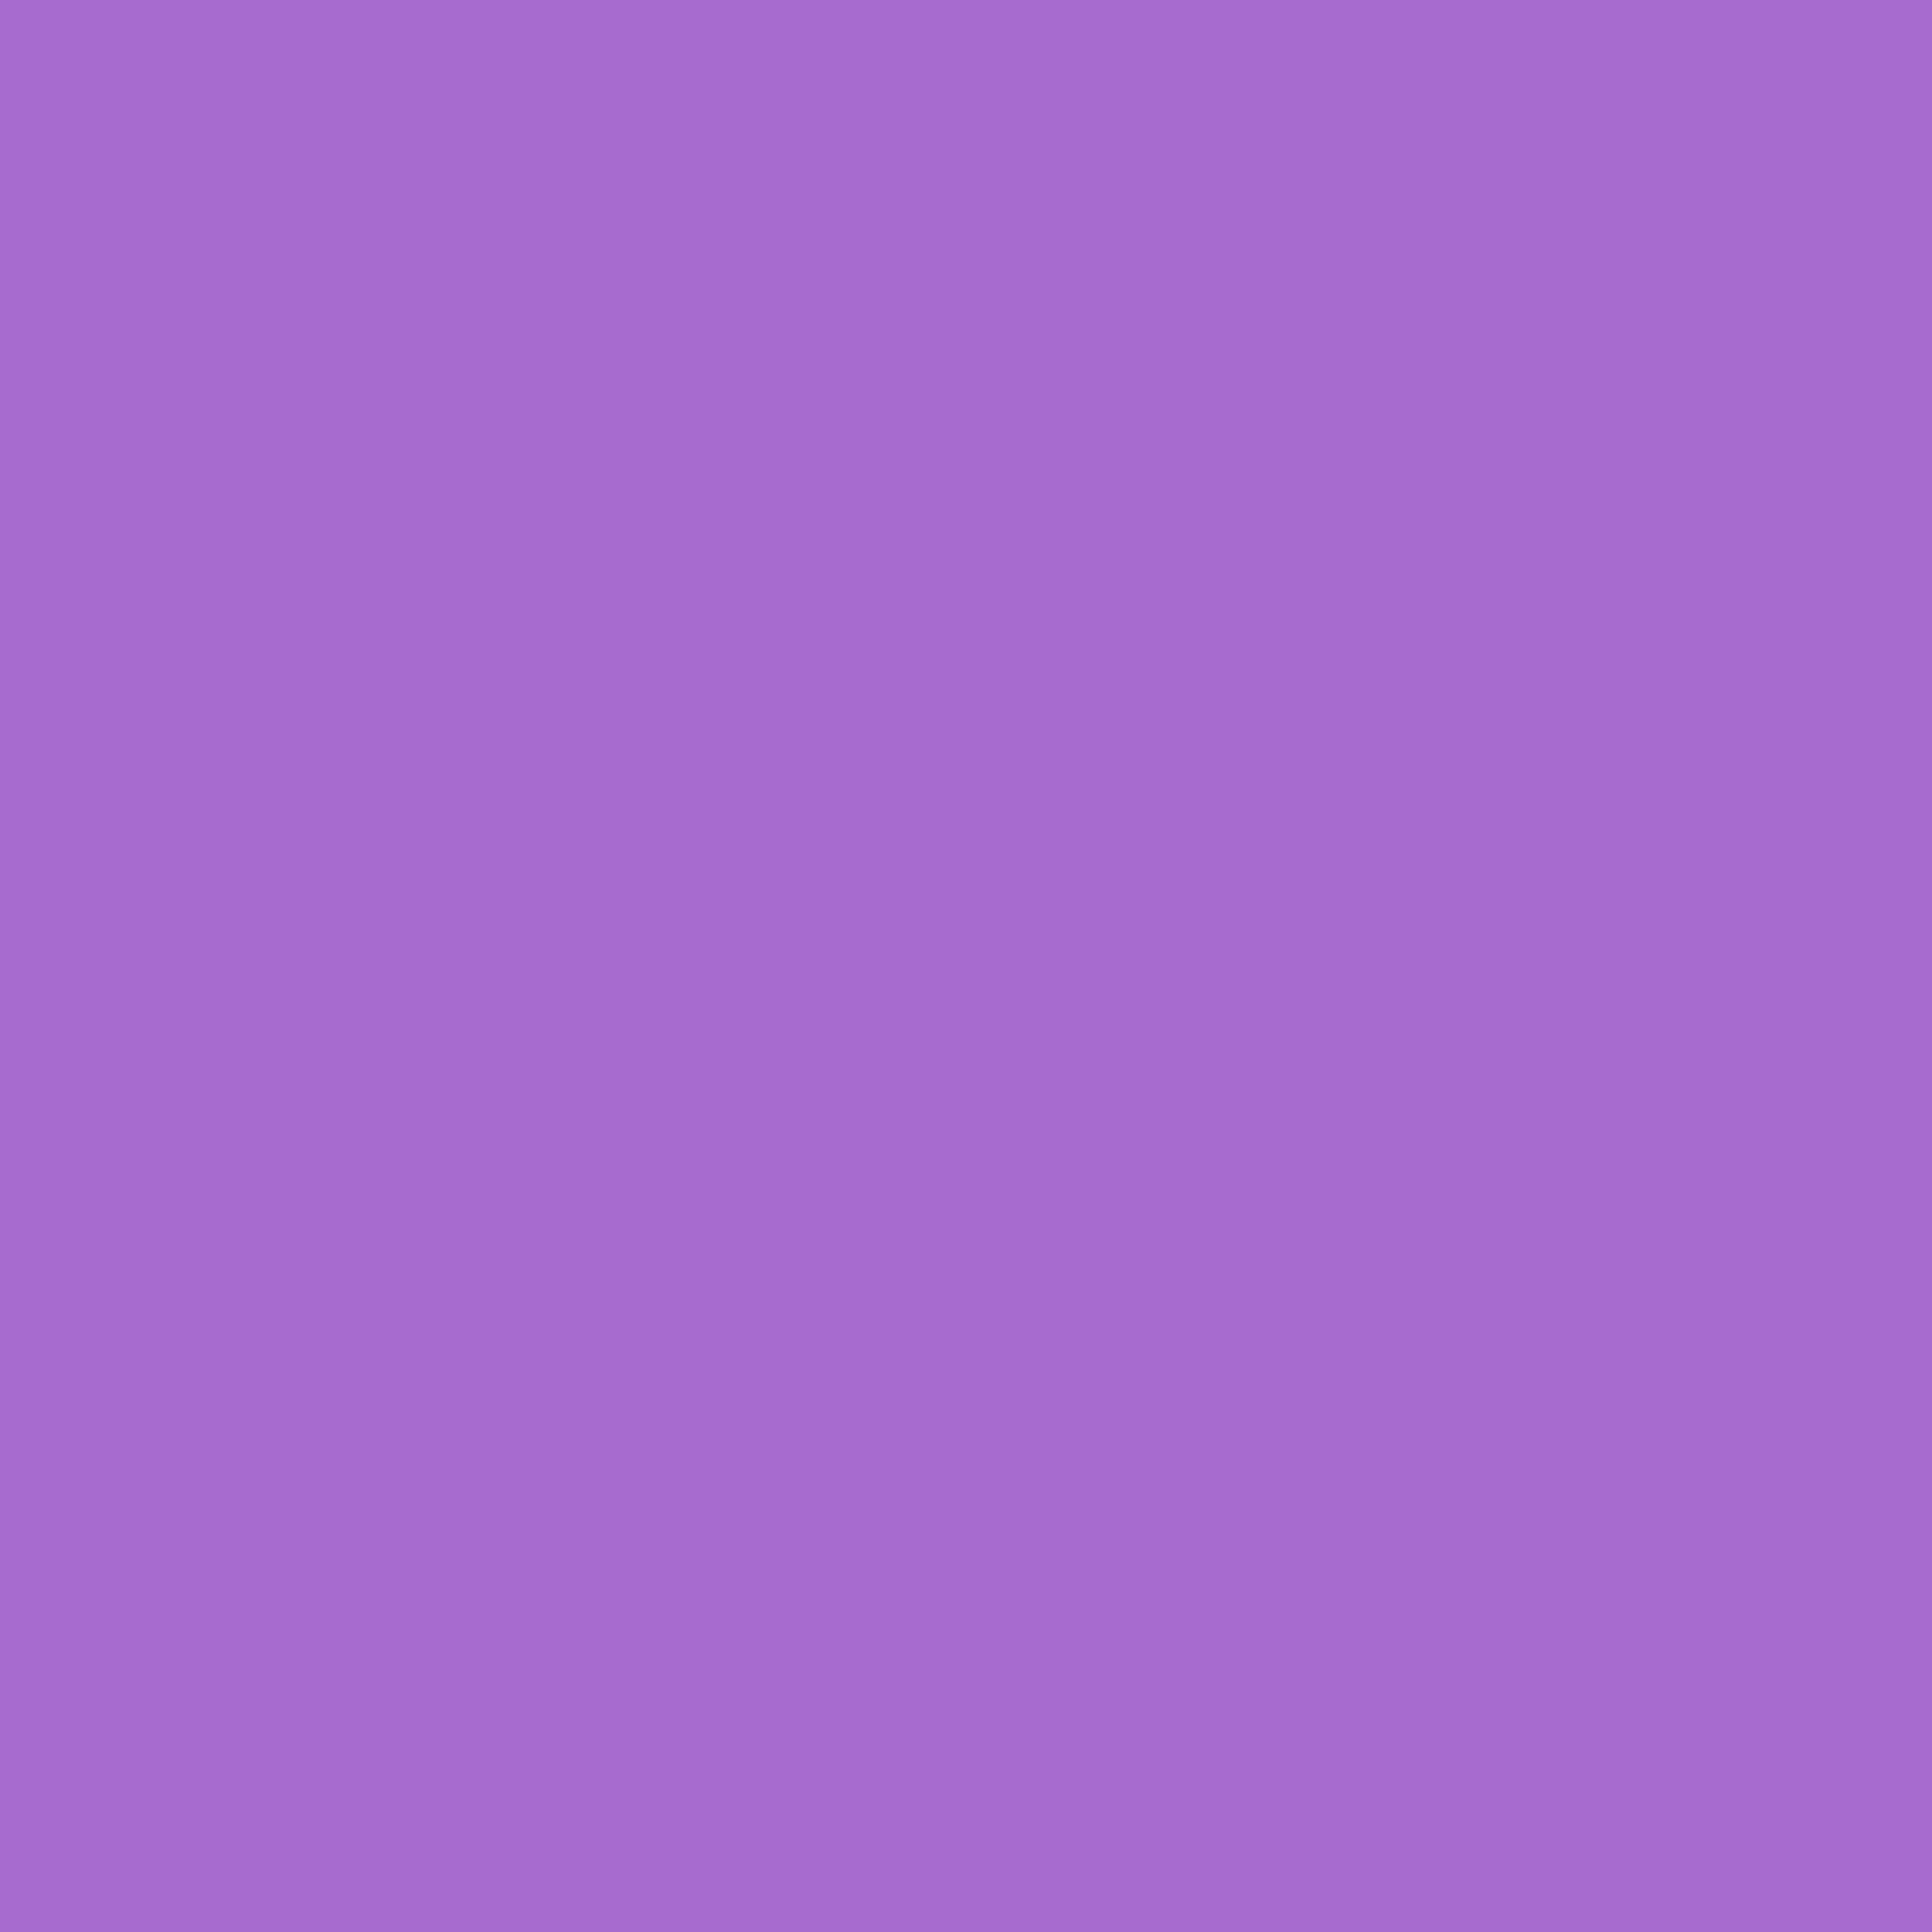 2048x2048 Rich Lavender Solid Color Background